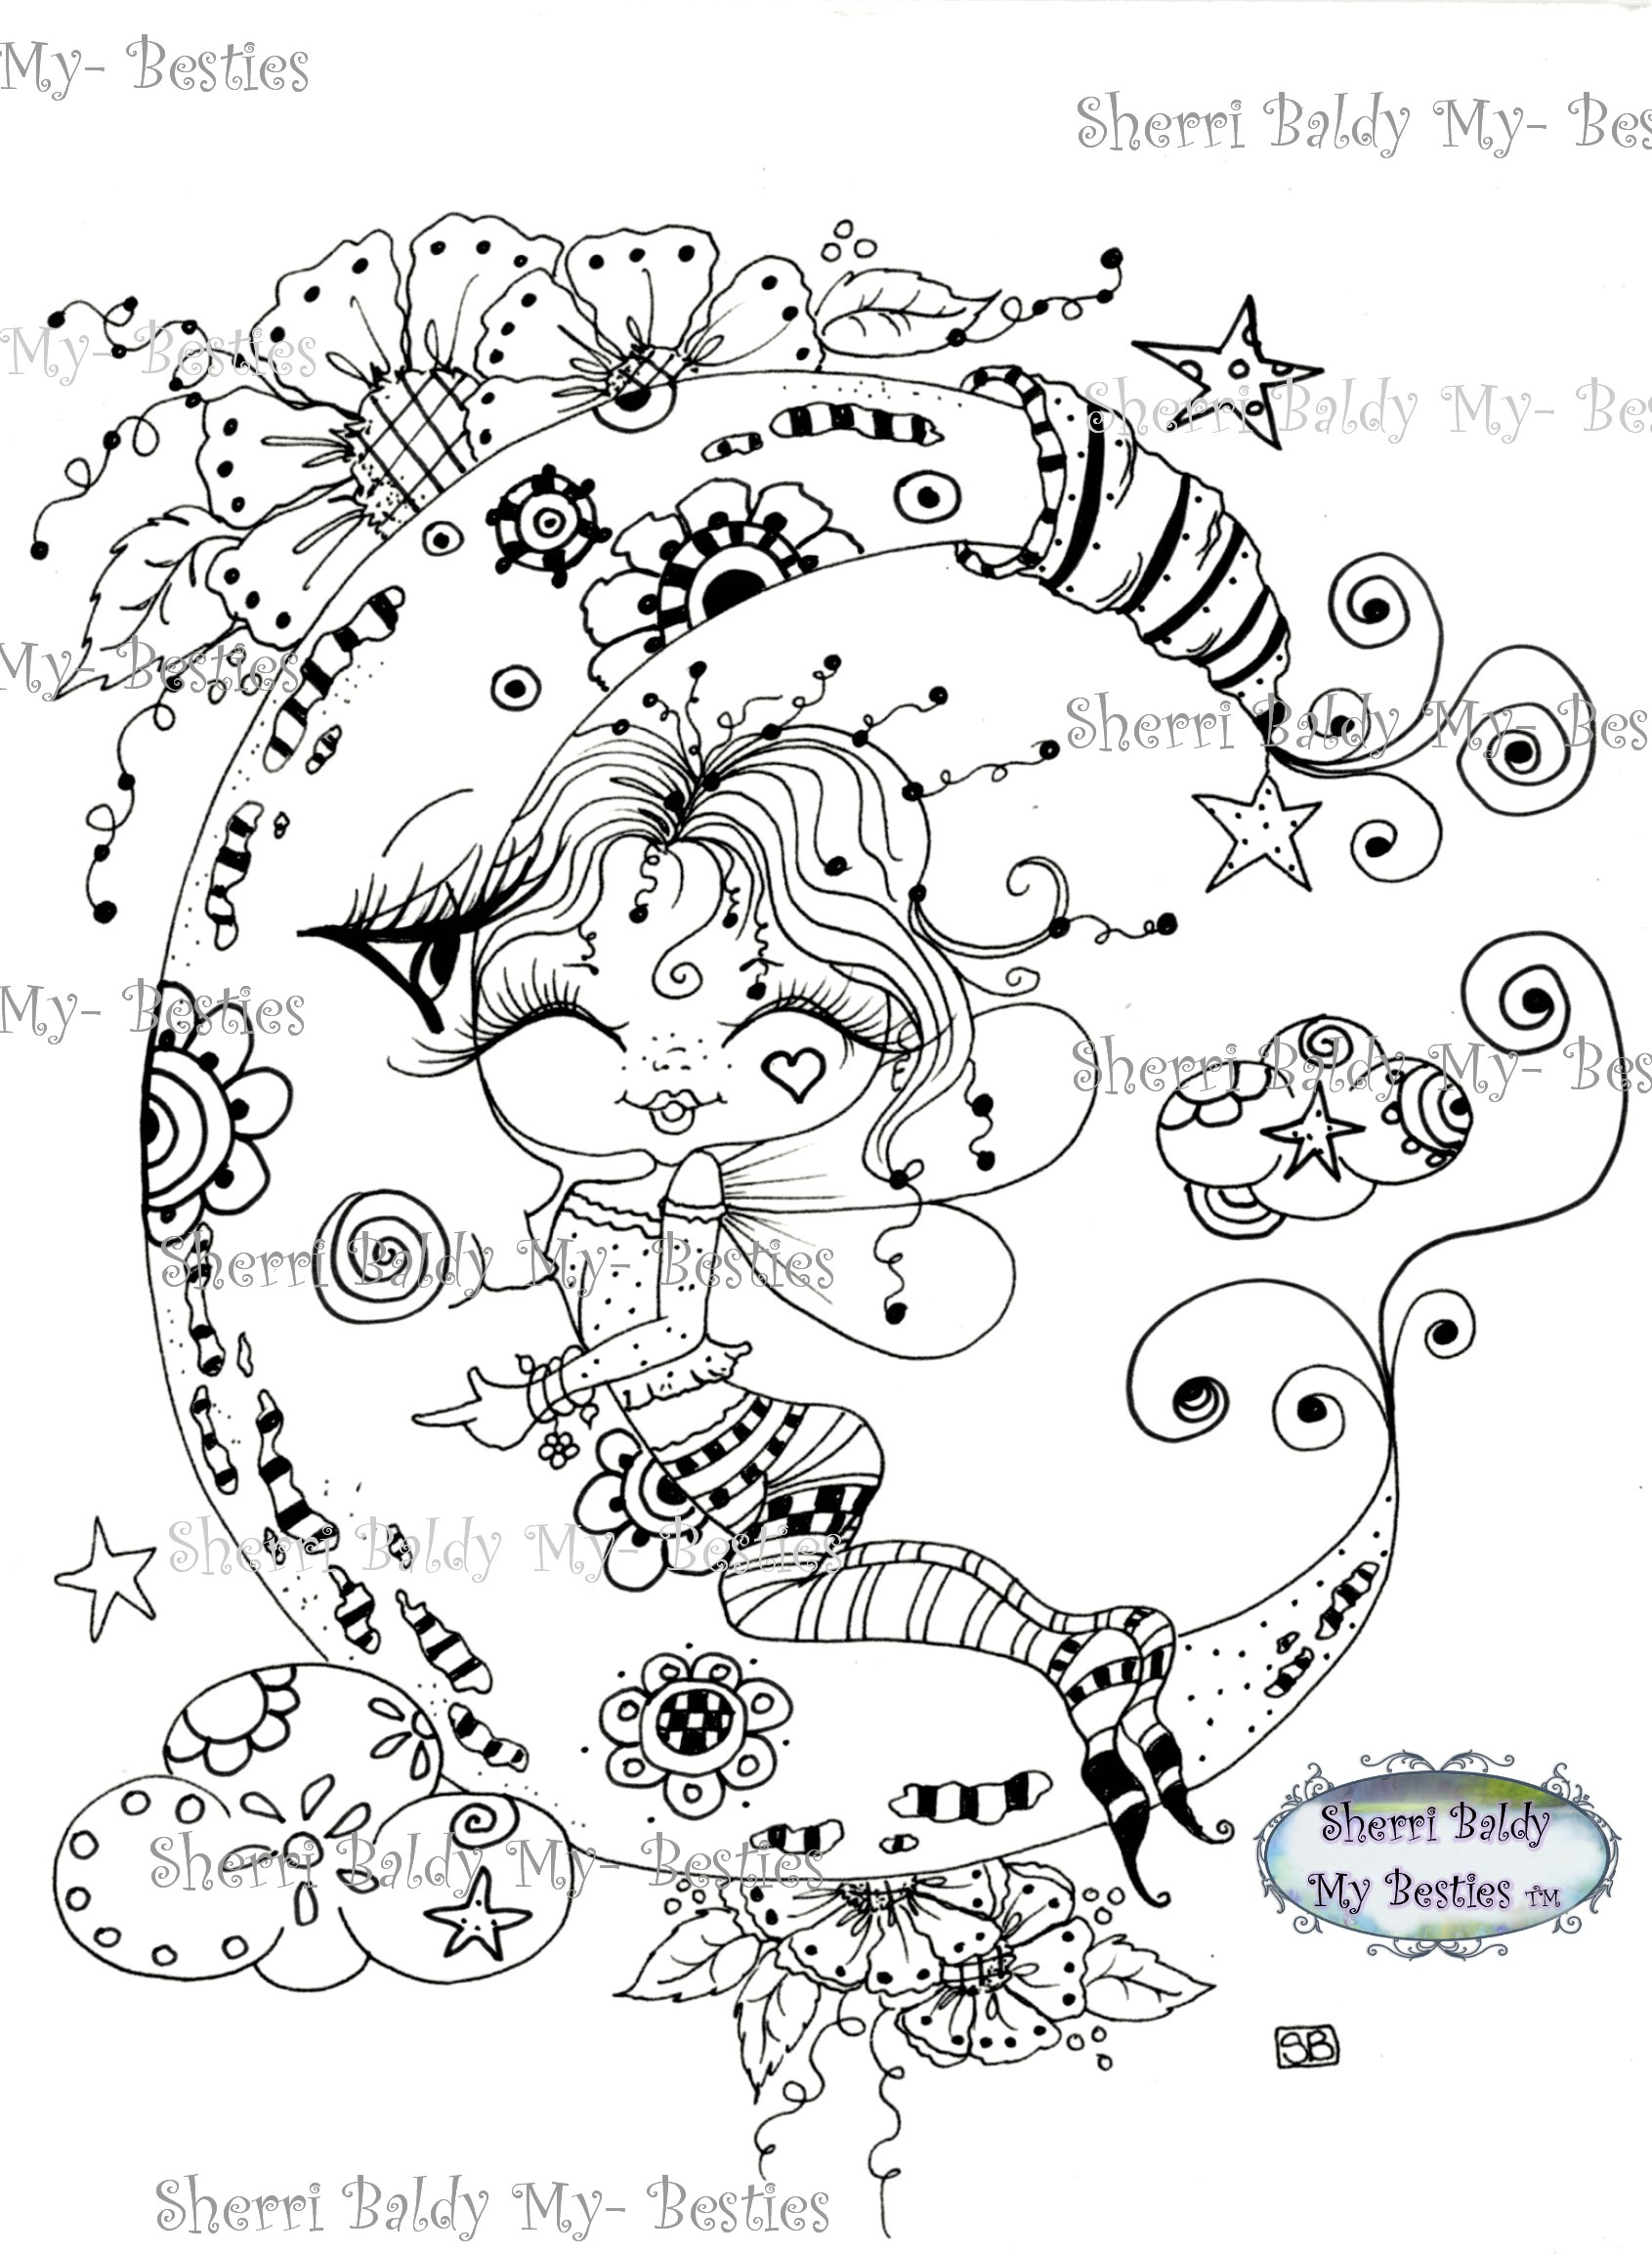 Instant Download My Besties ~ Wish Upon A Star img908